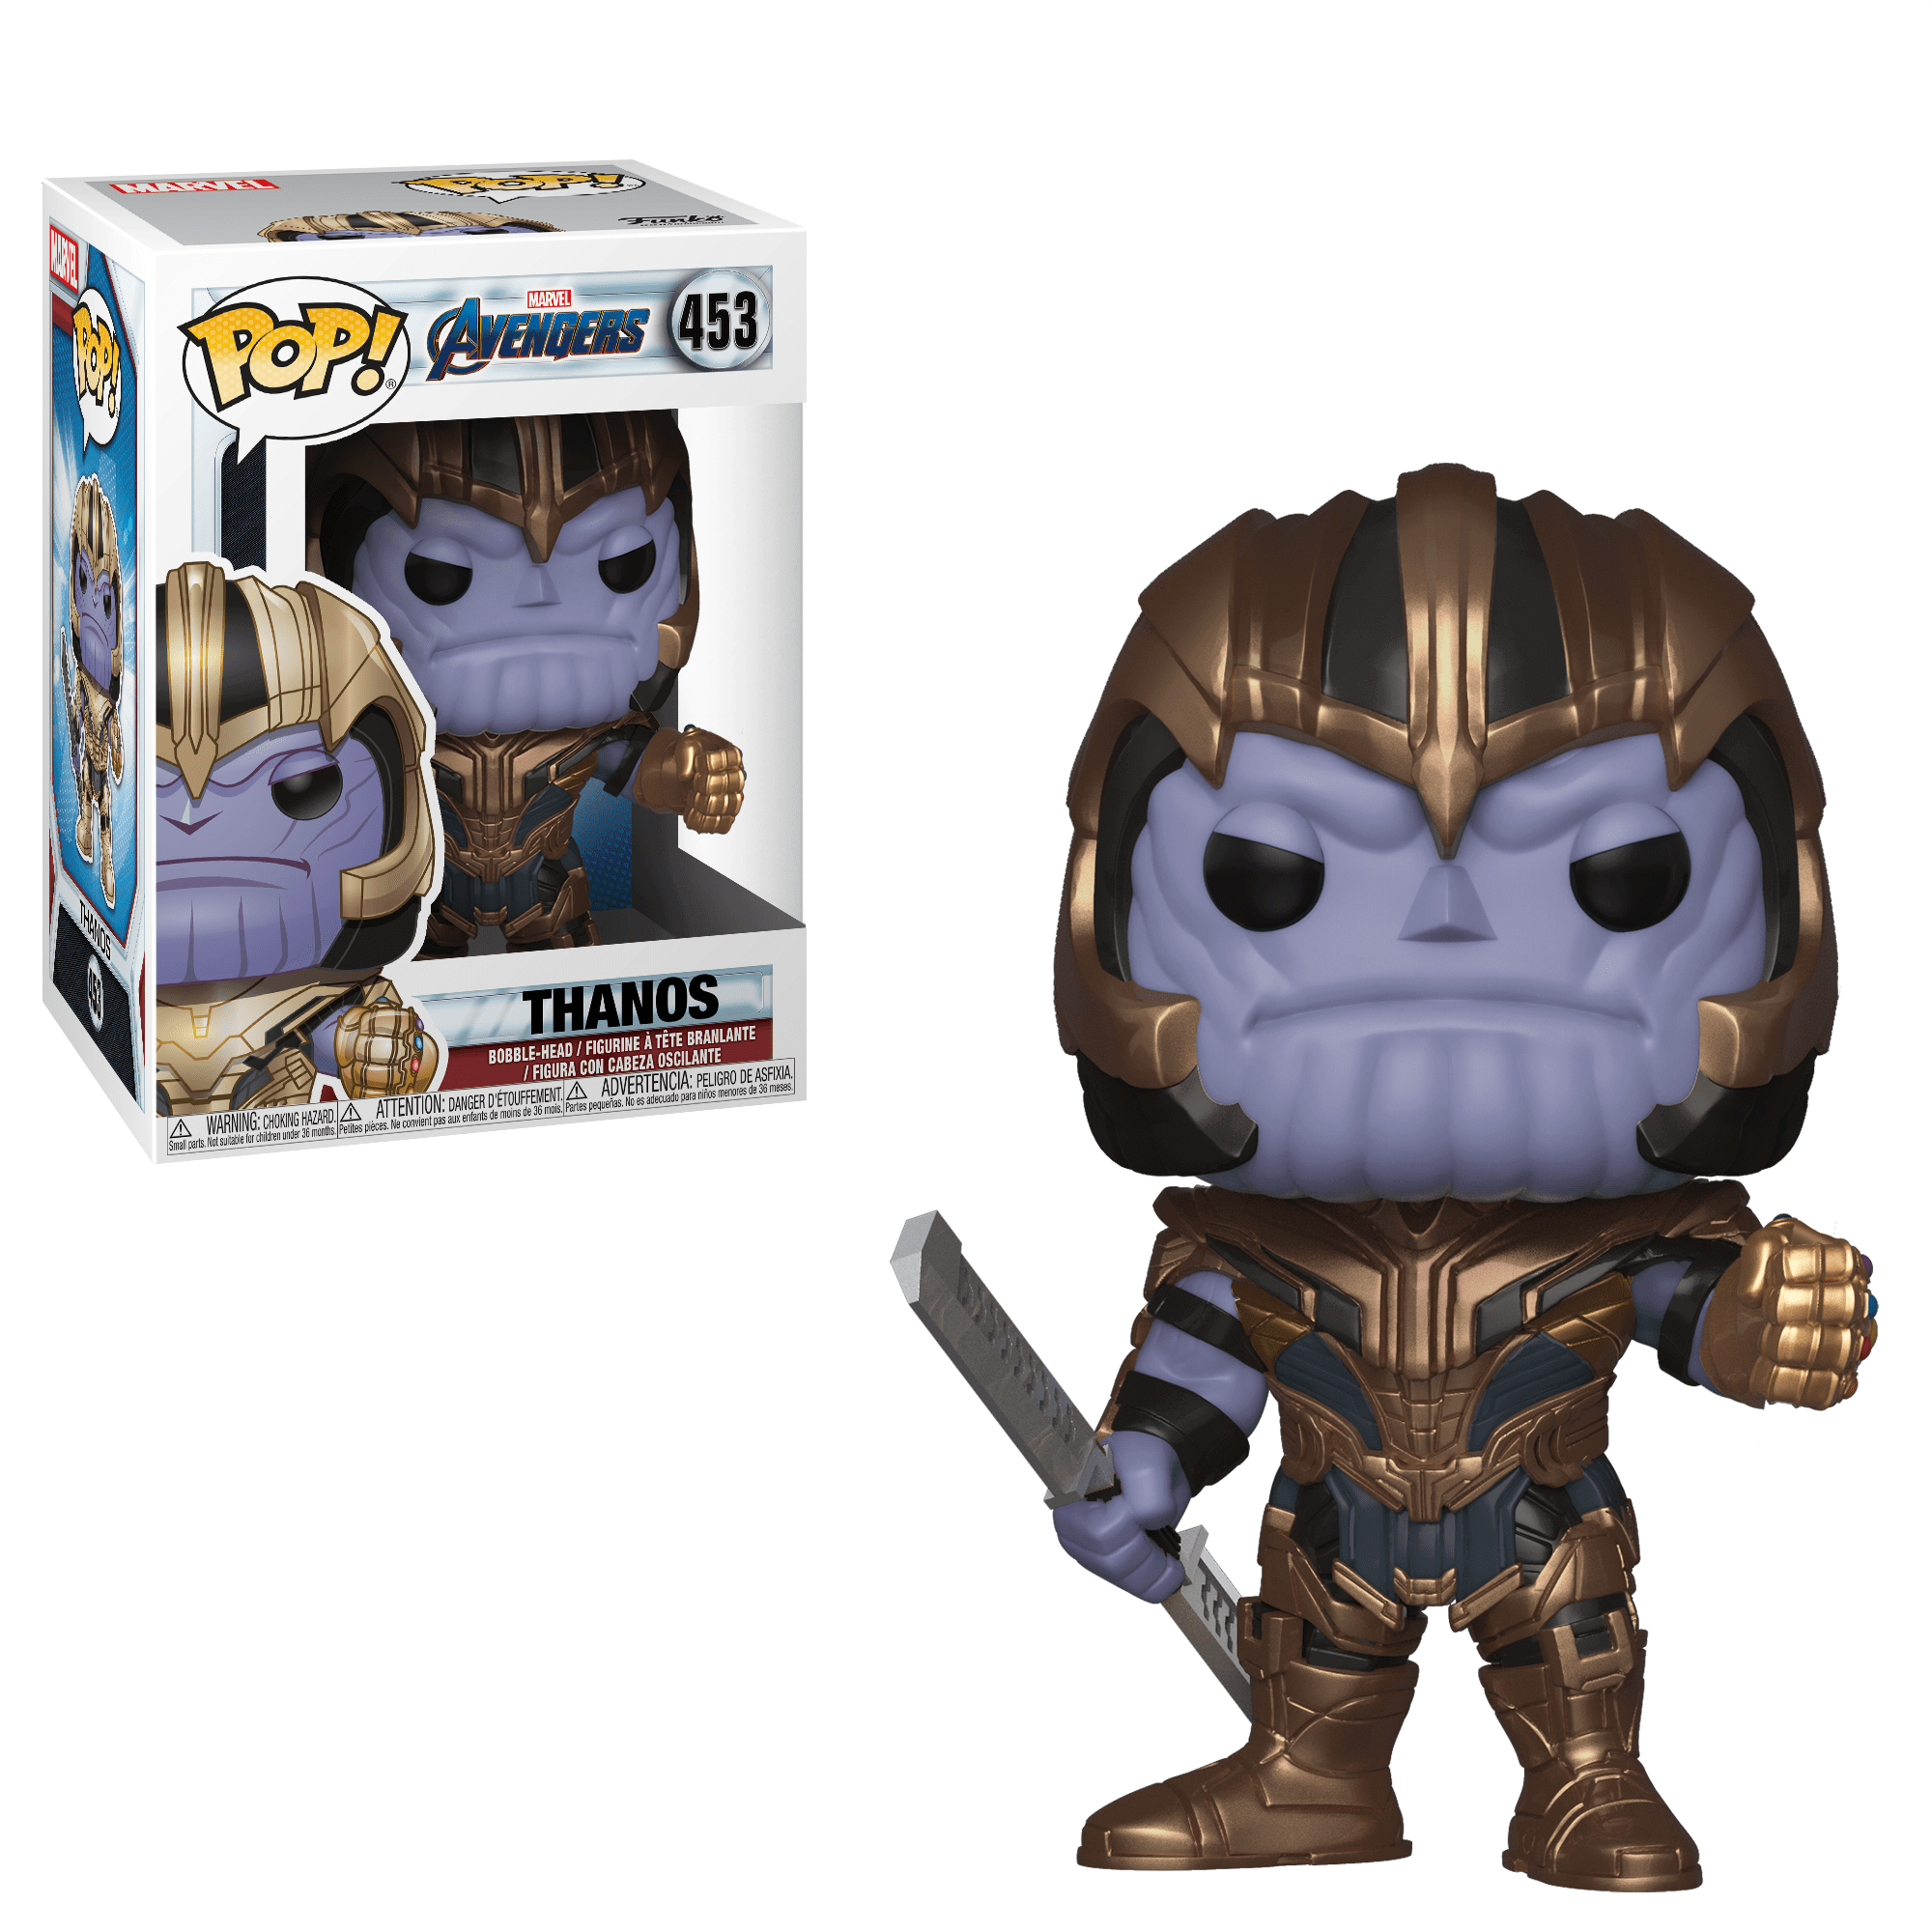 1436_3266_8d6a7dd003f5065_36672_Avengers_Thanos_POP_GLAM